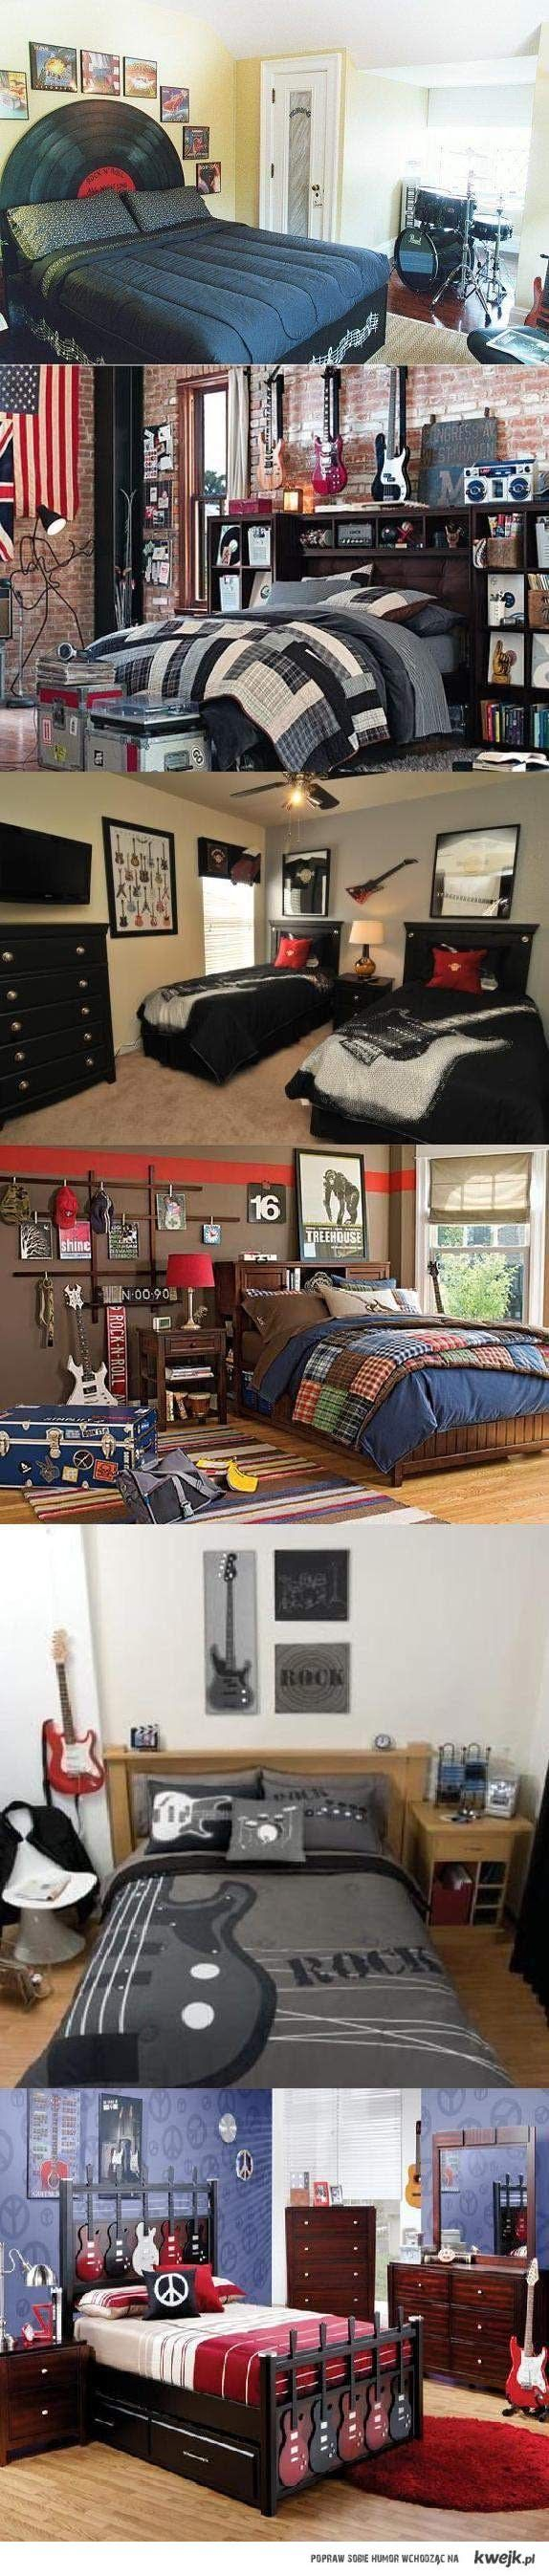 Kendall, Landon said he really really likes these beds!!!! And that is what he wants in his bedroom.